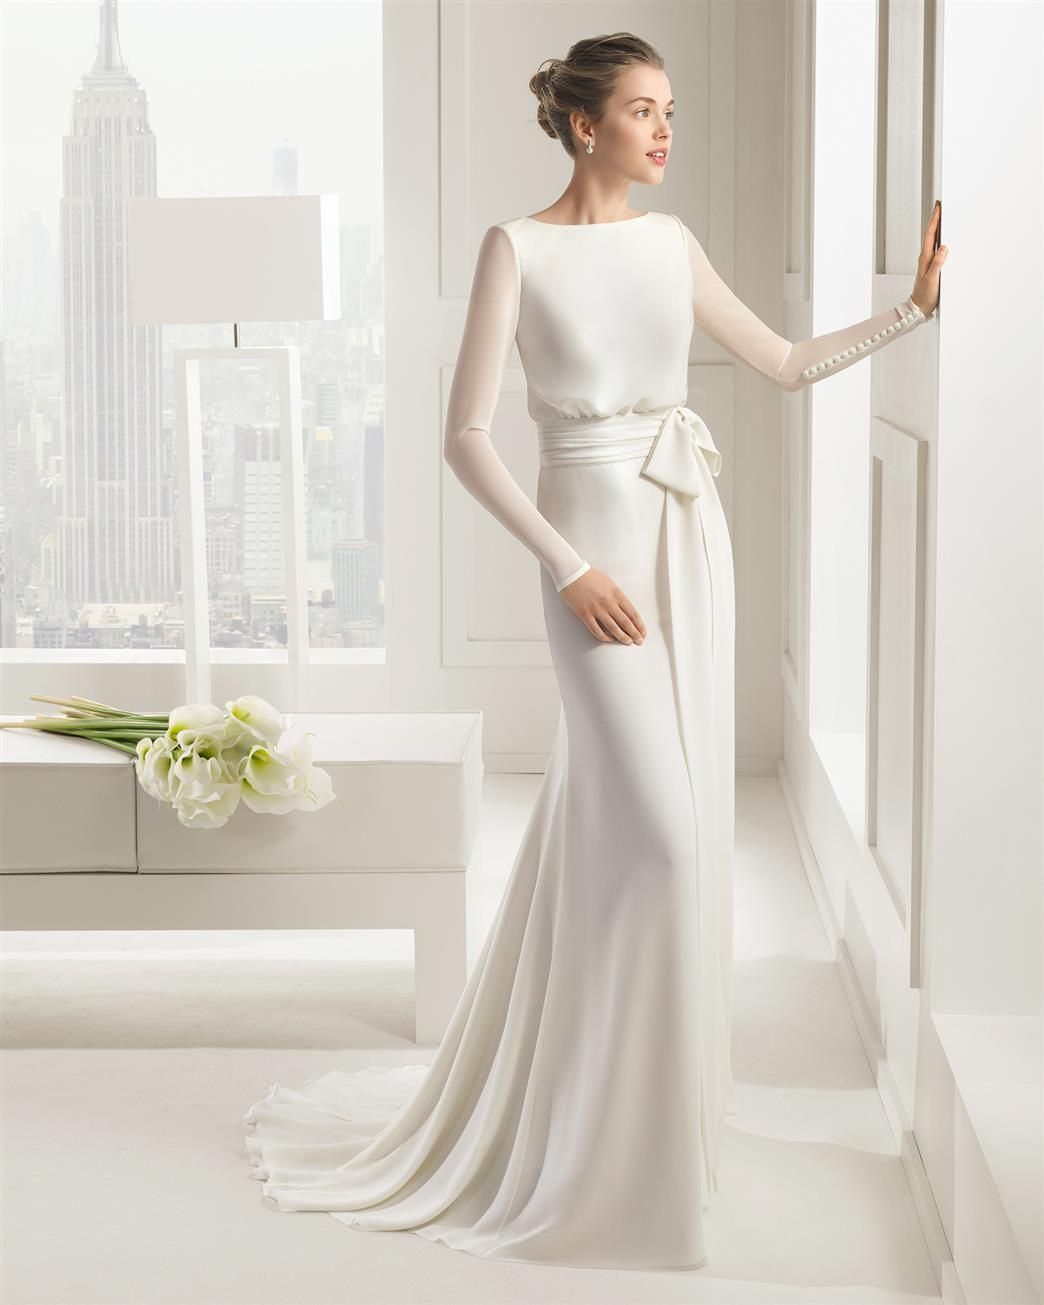 Sheath wedding dress with long sleeves